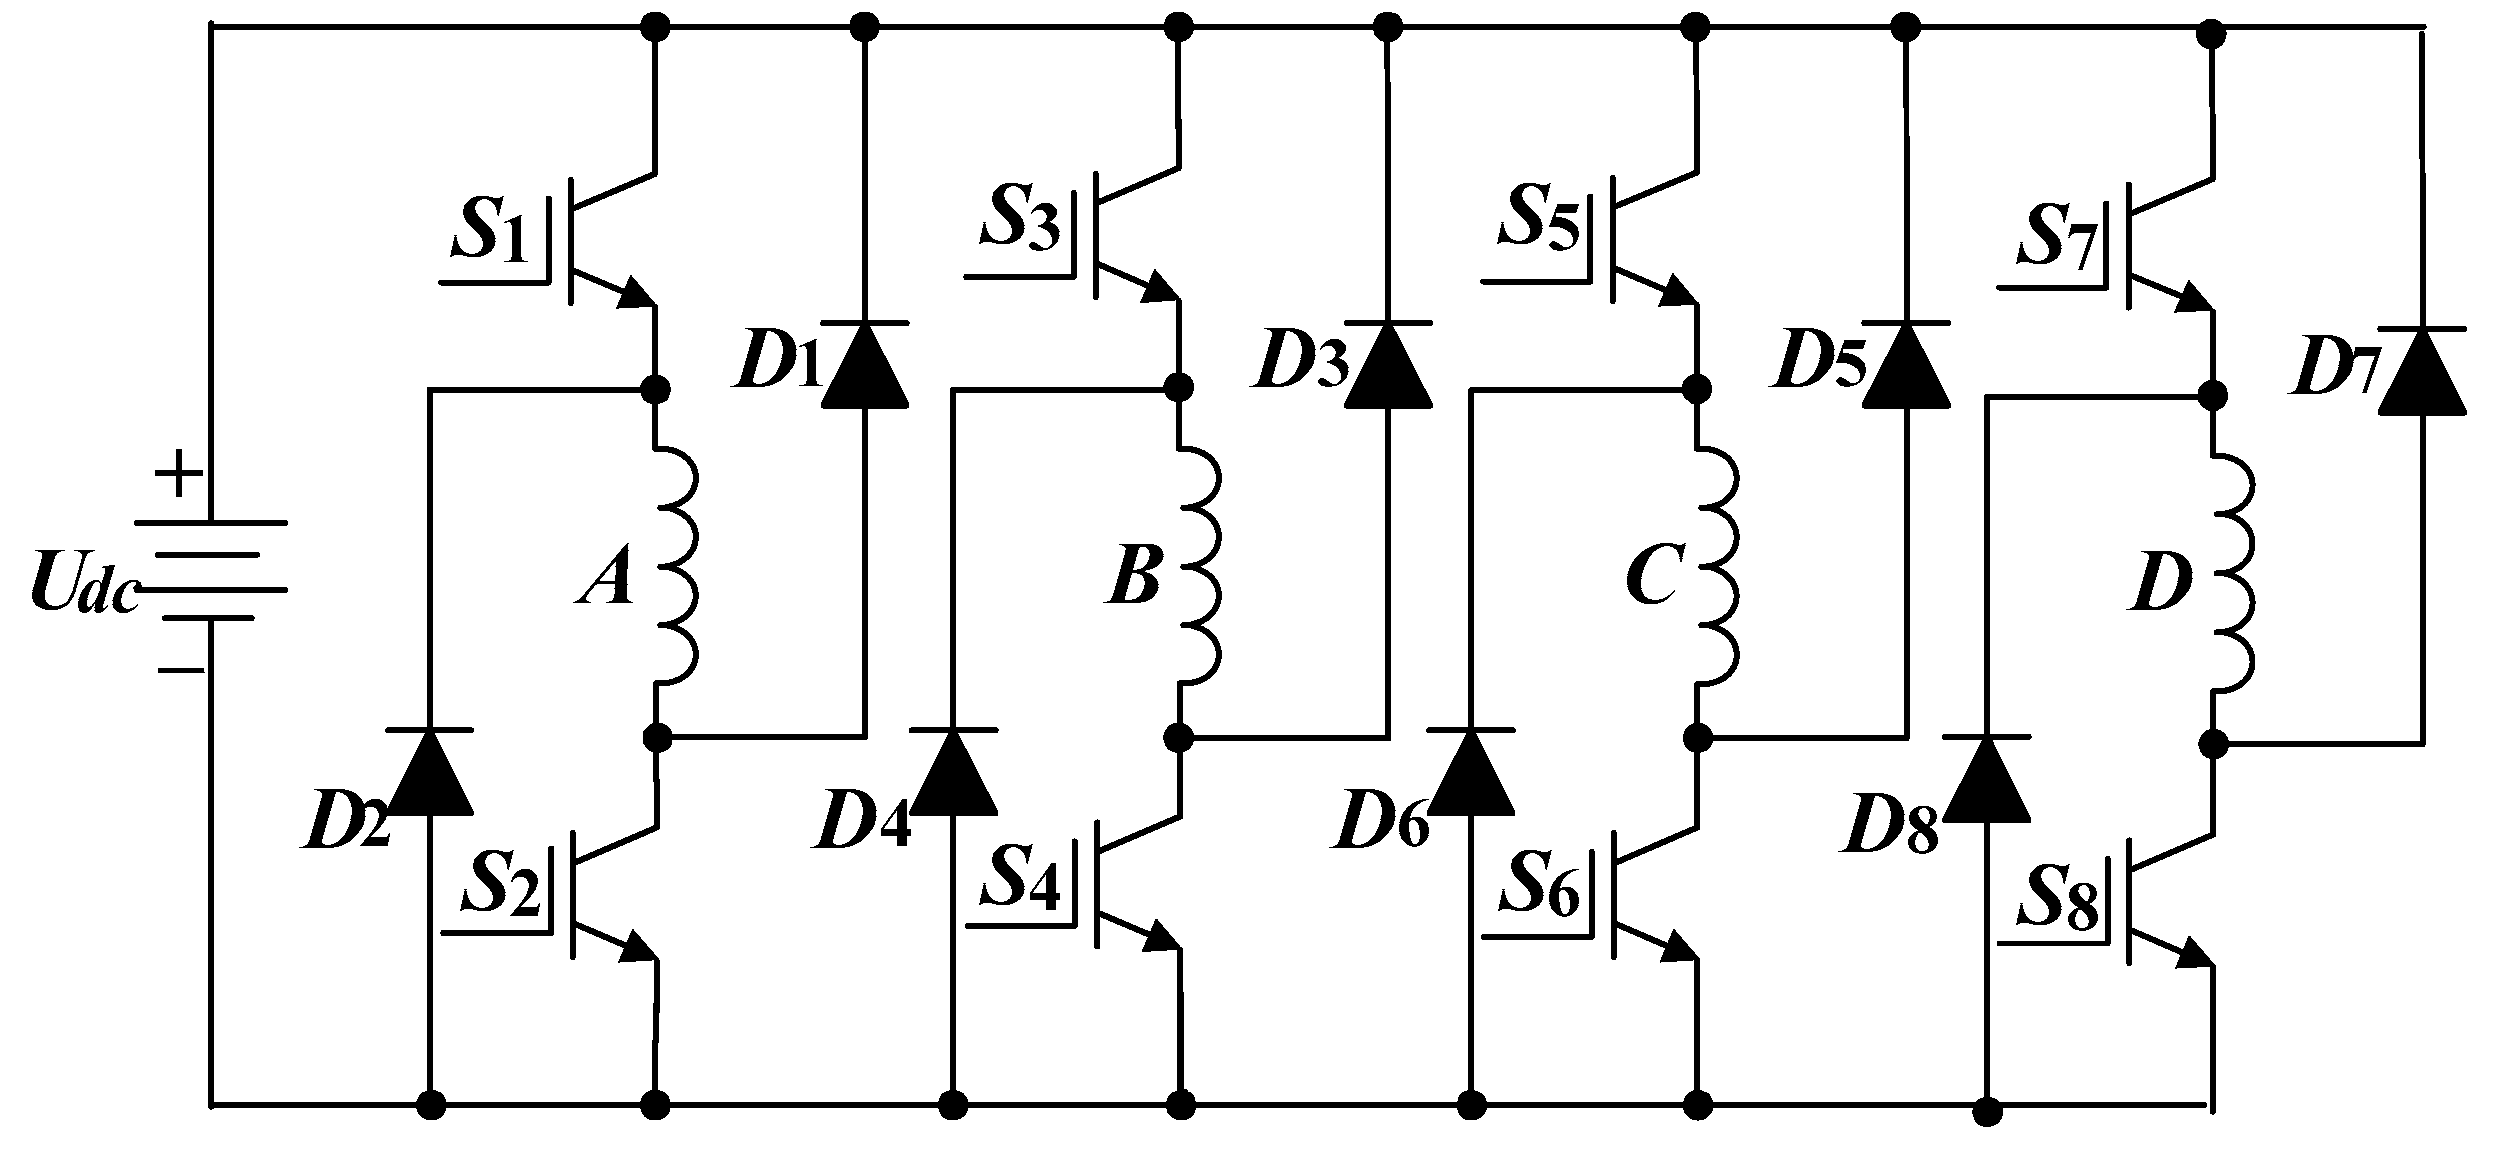 fault diagnosis of switched reluctance motors in electrified vehicle applications